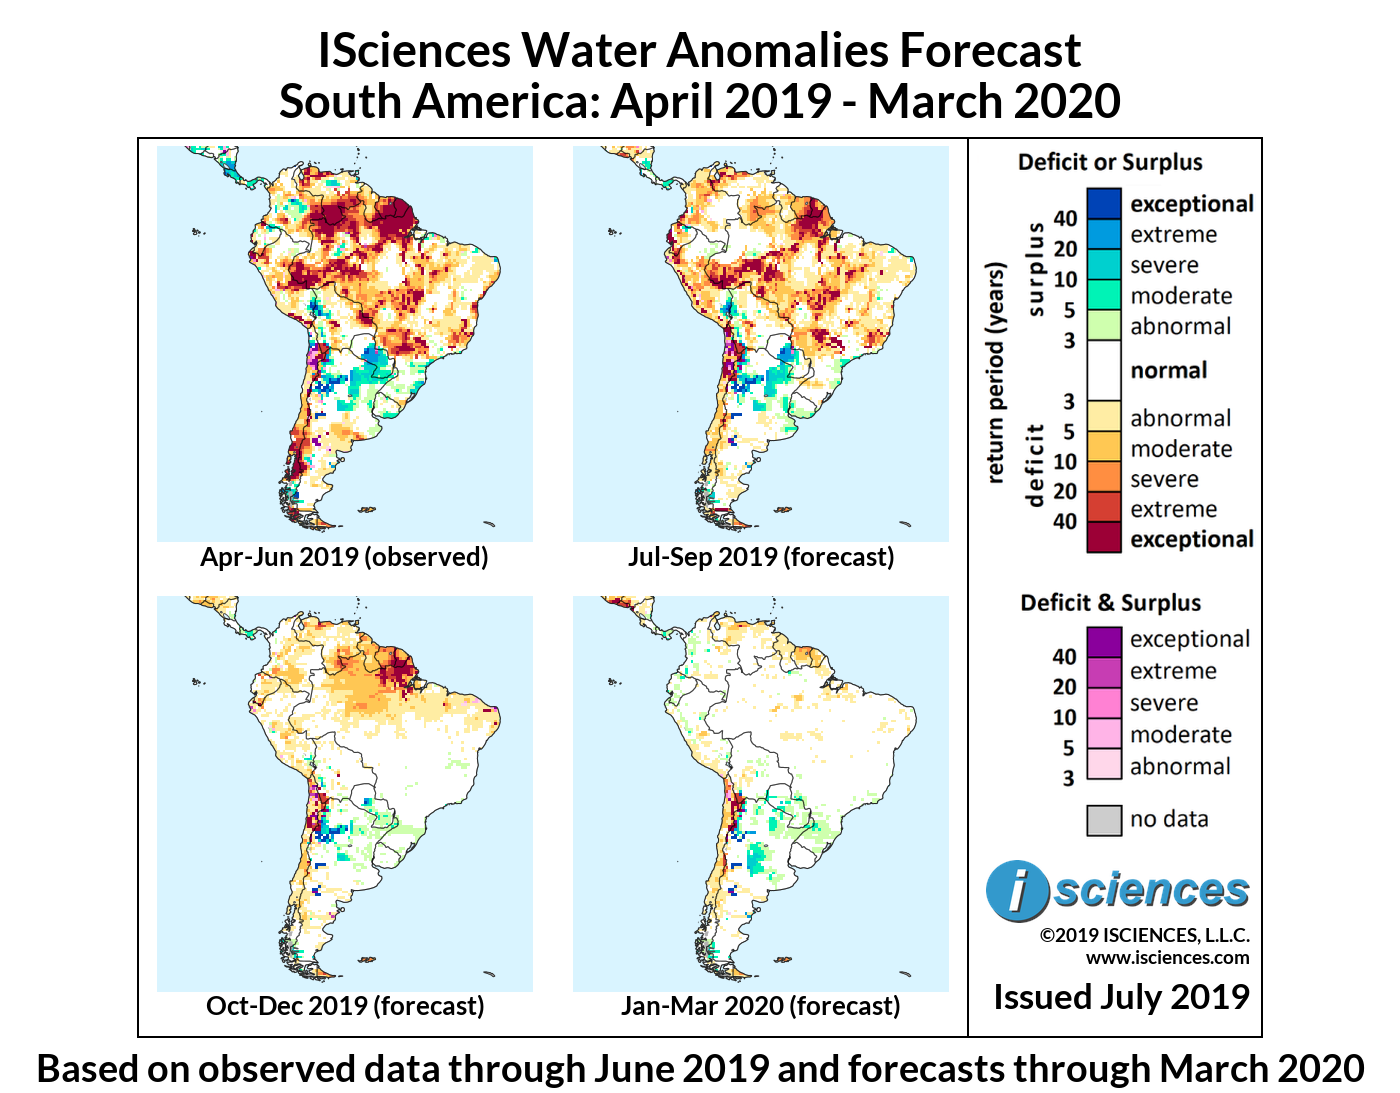 ISciences_South_America_Composite_Adjusted_201904-202003_3mo_panel.png